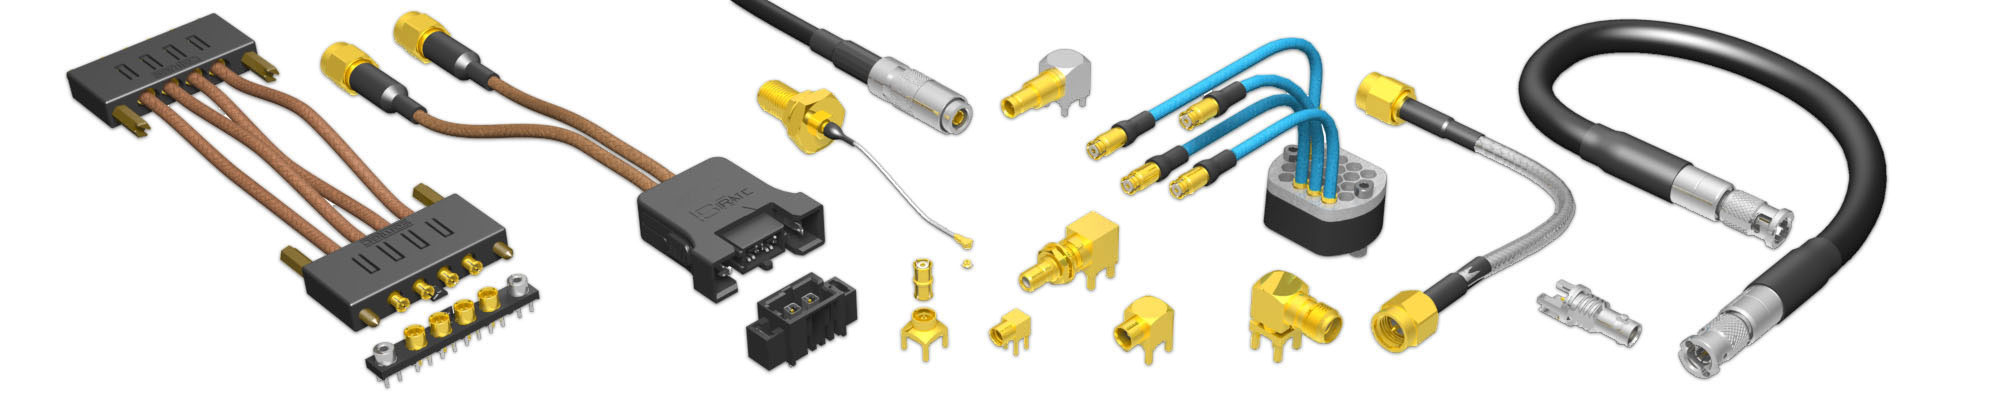 RF Connectors, Cables, and Components